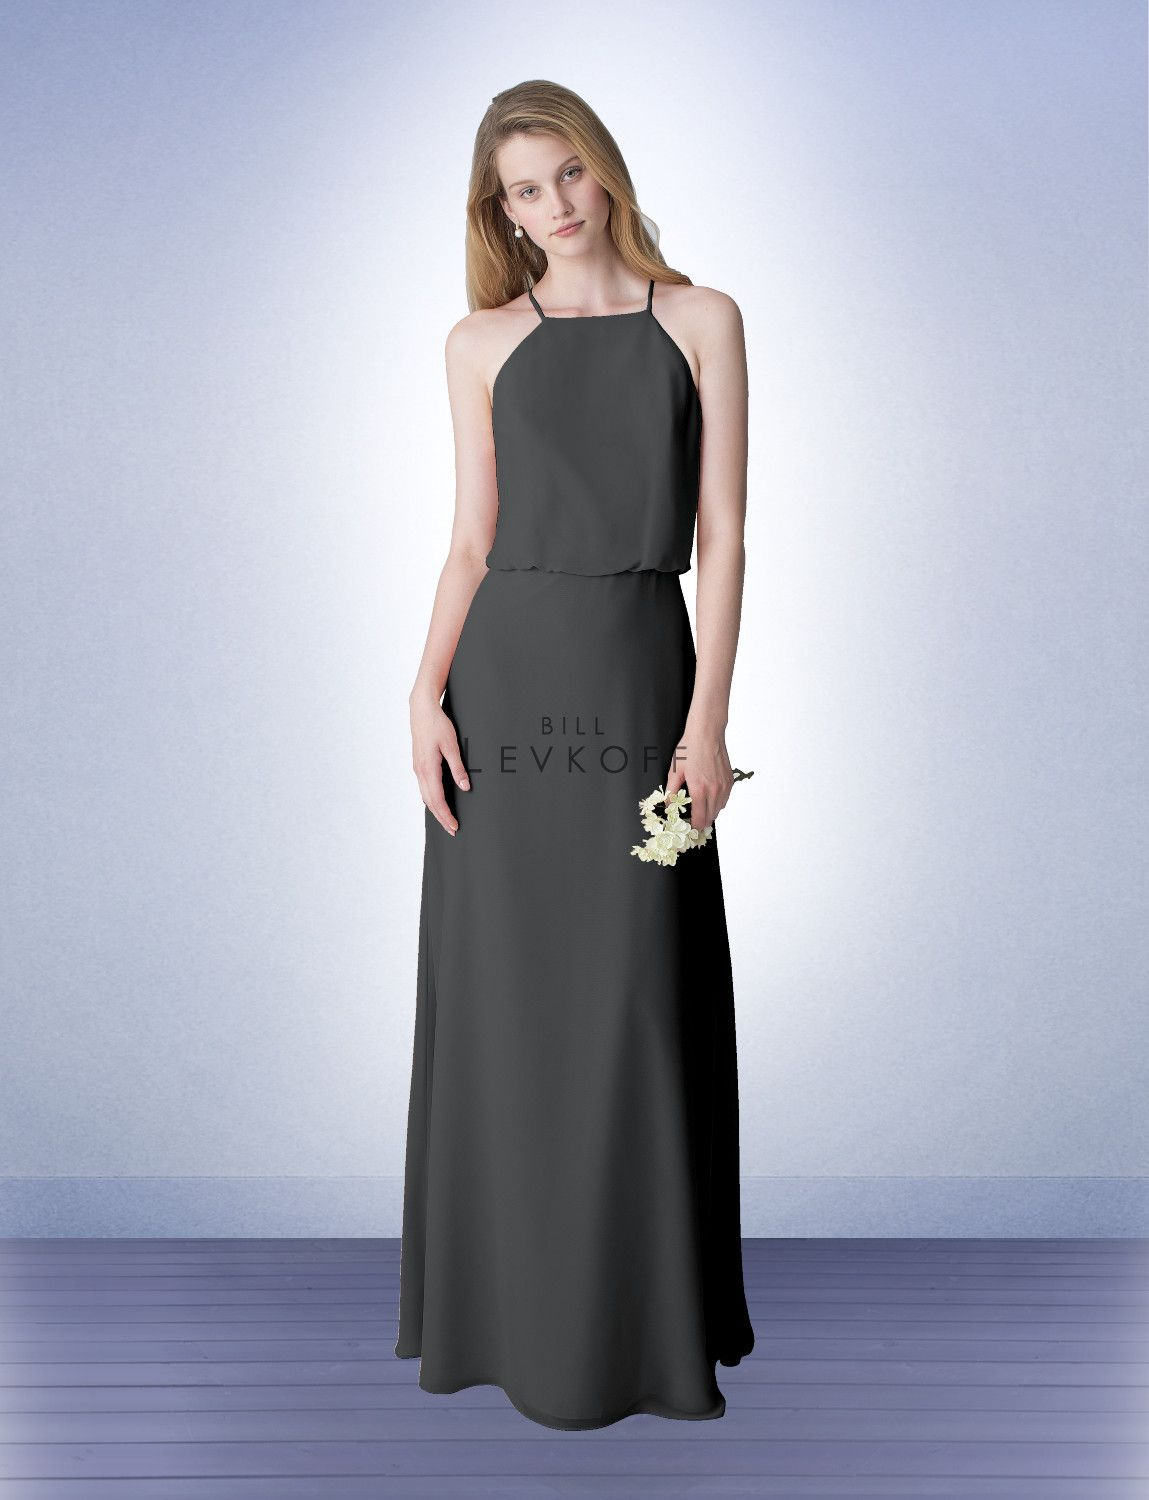 Bridesmaid dress style 1265 bridesmaid dresses by bill levkoff bridesmaid dress style 1265 bridesmaid dresses by bill levkoff pretty dress style ombrellifo Images